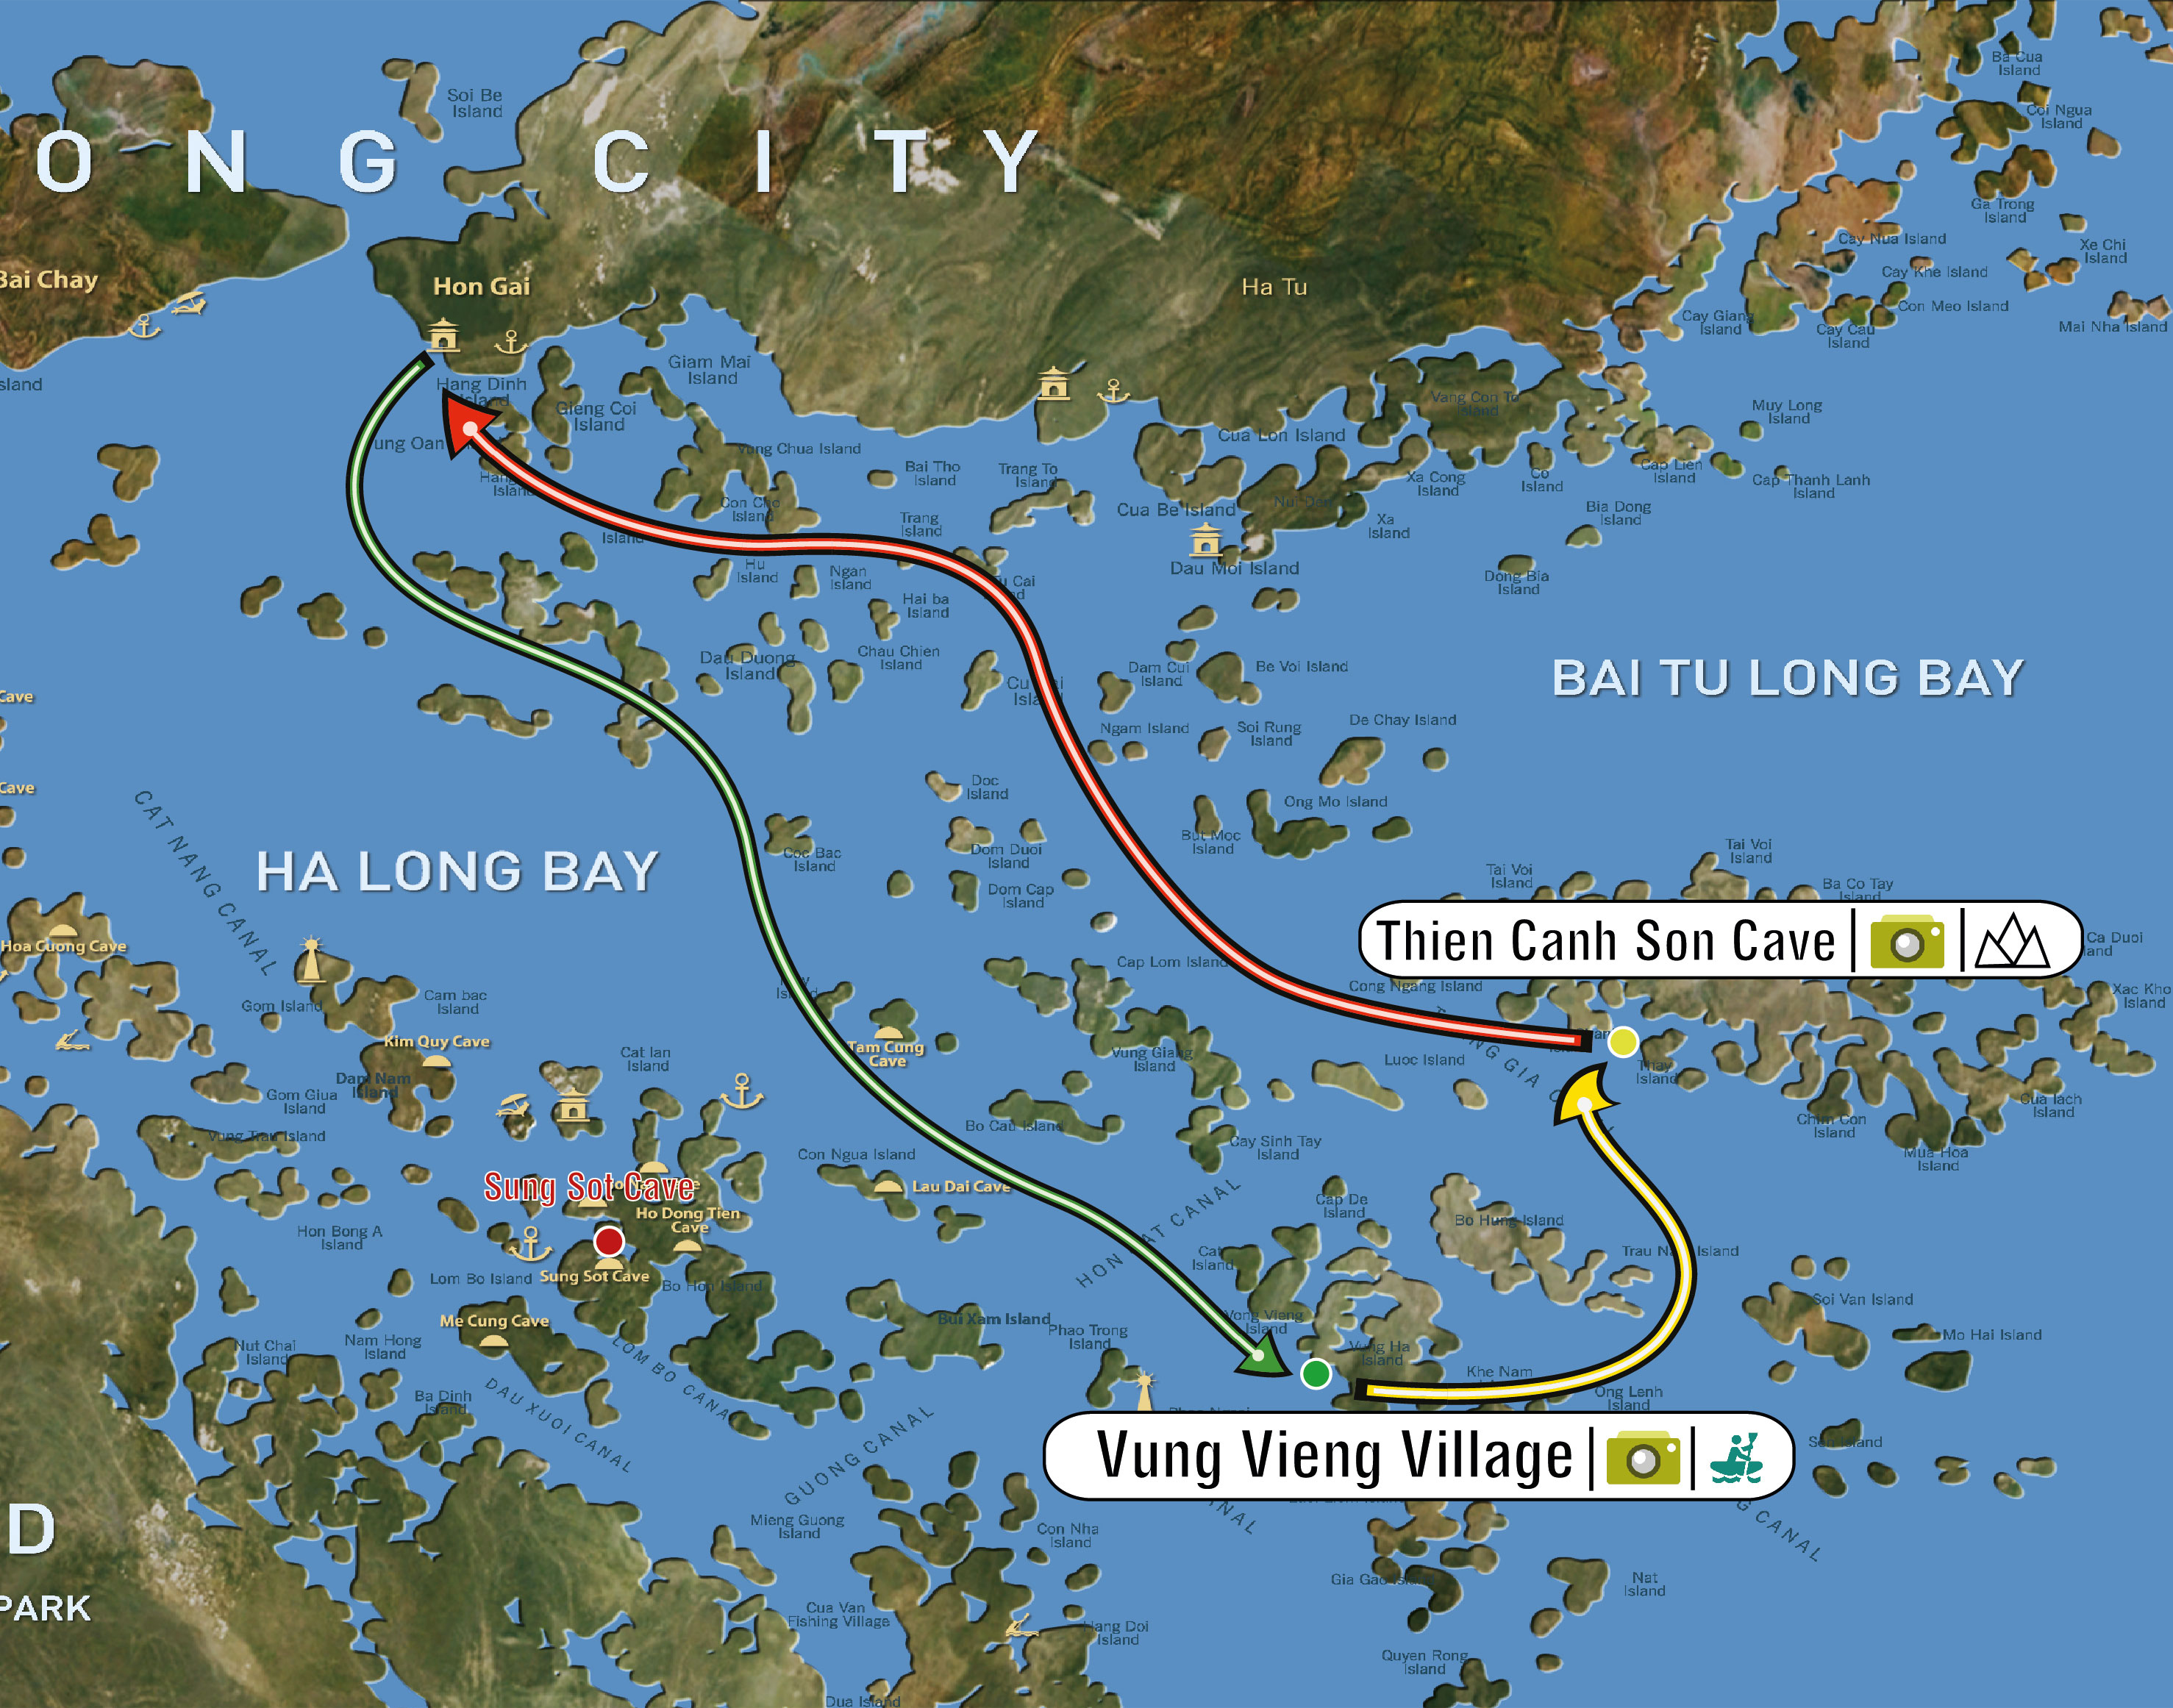 bai-tu-long-bay-map